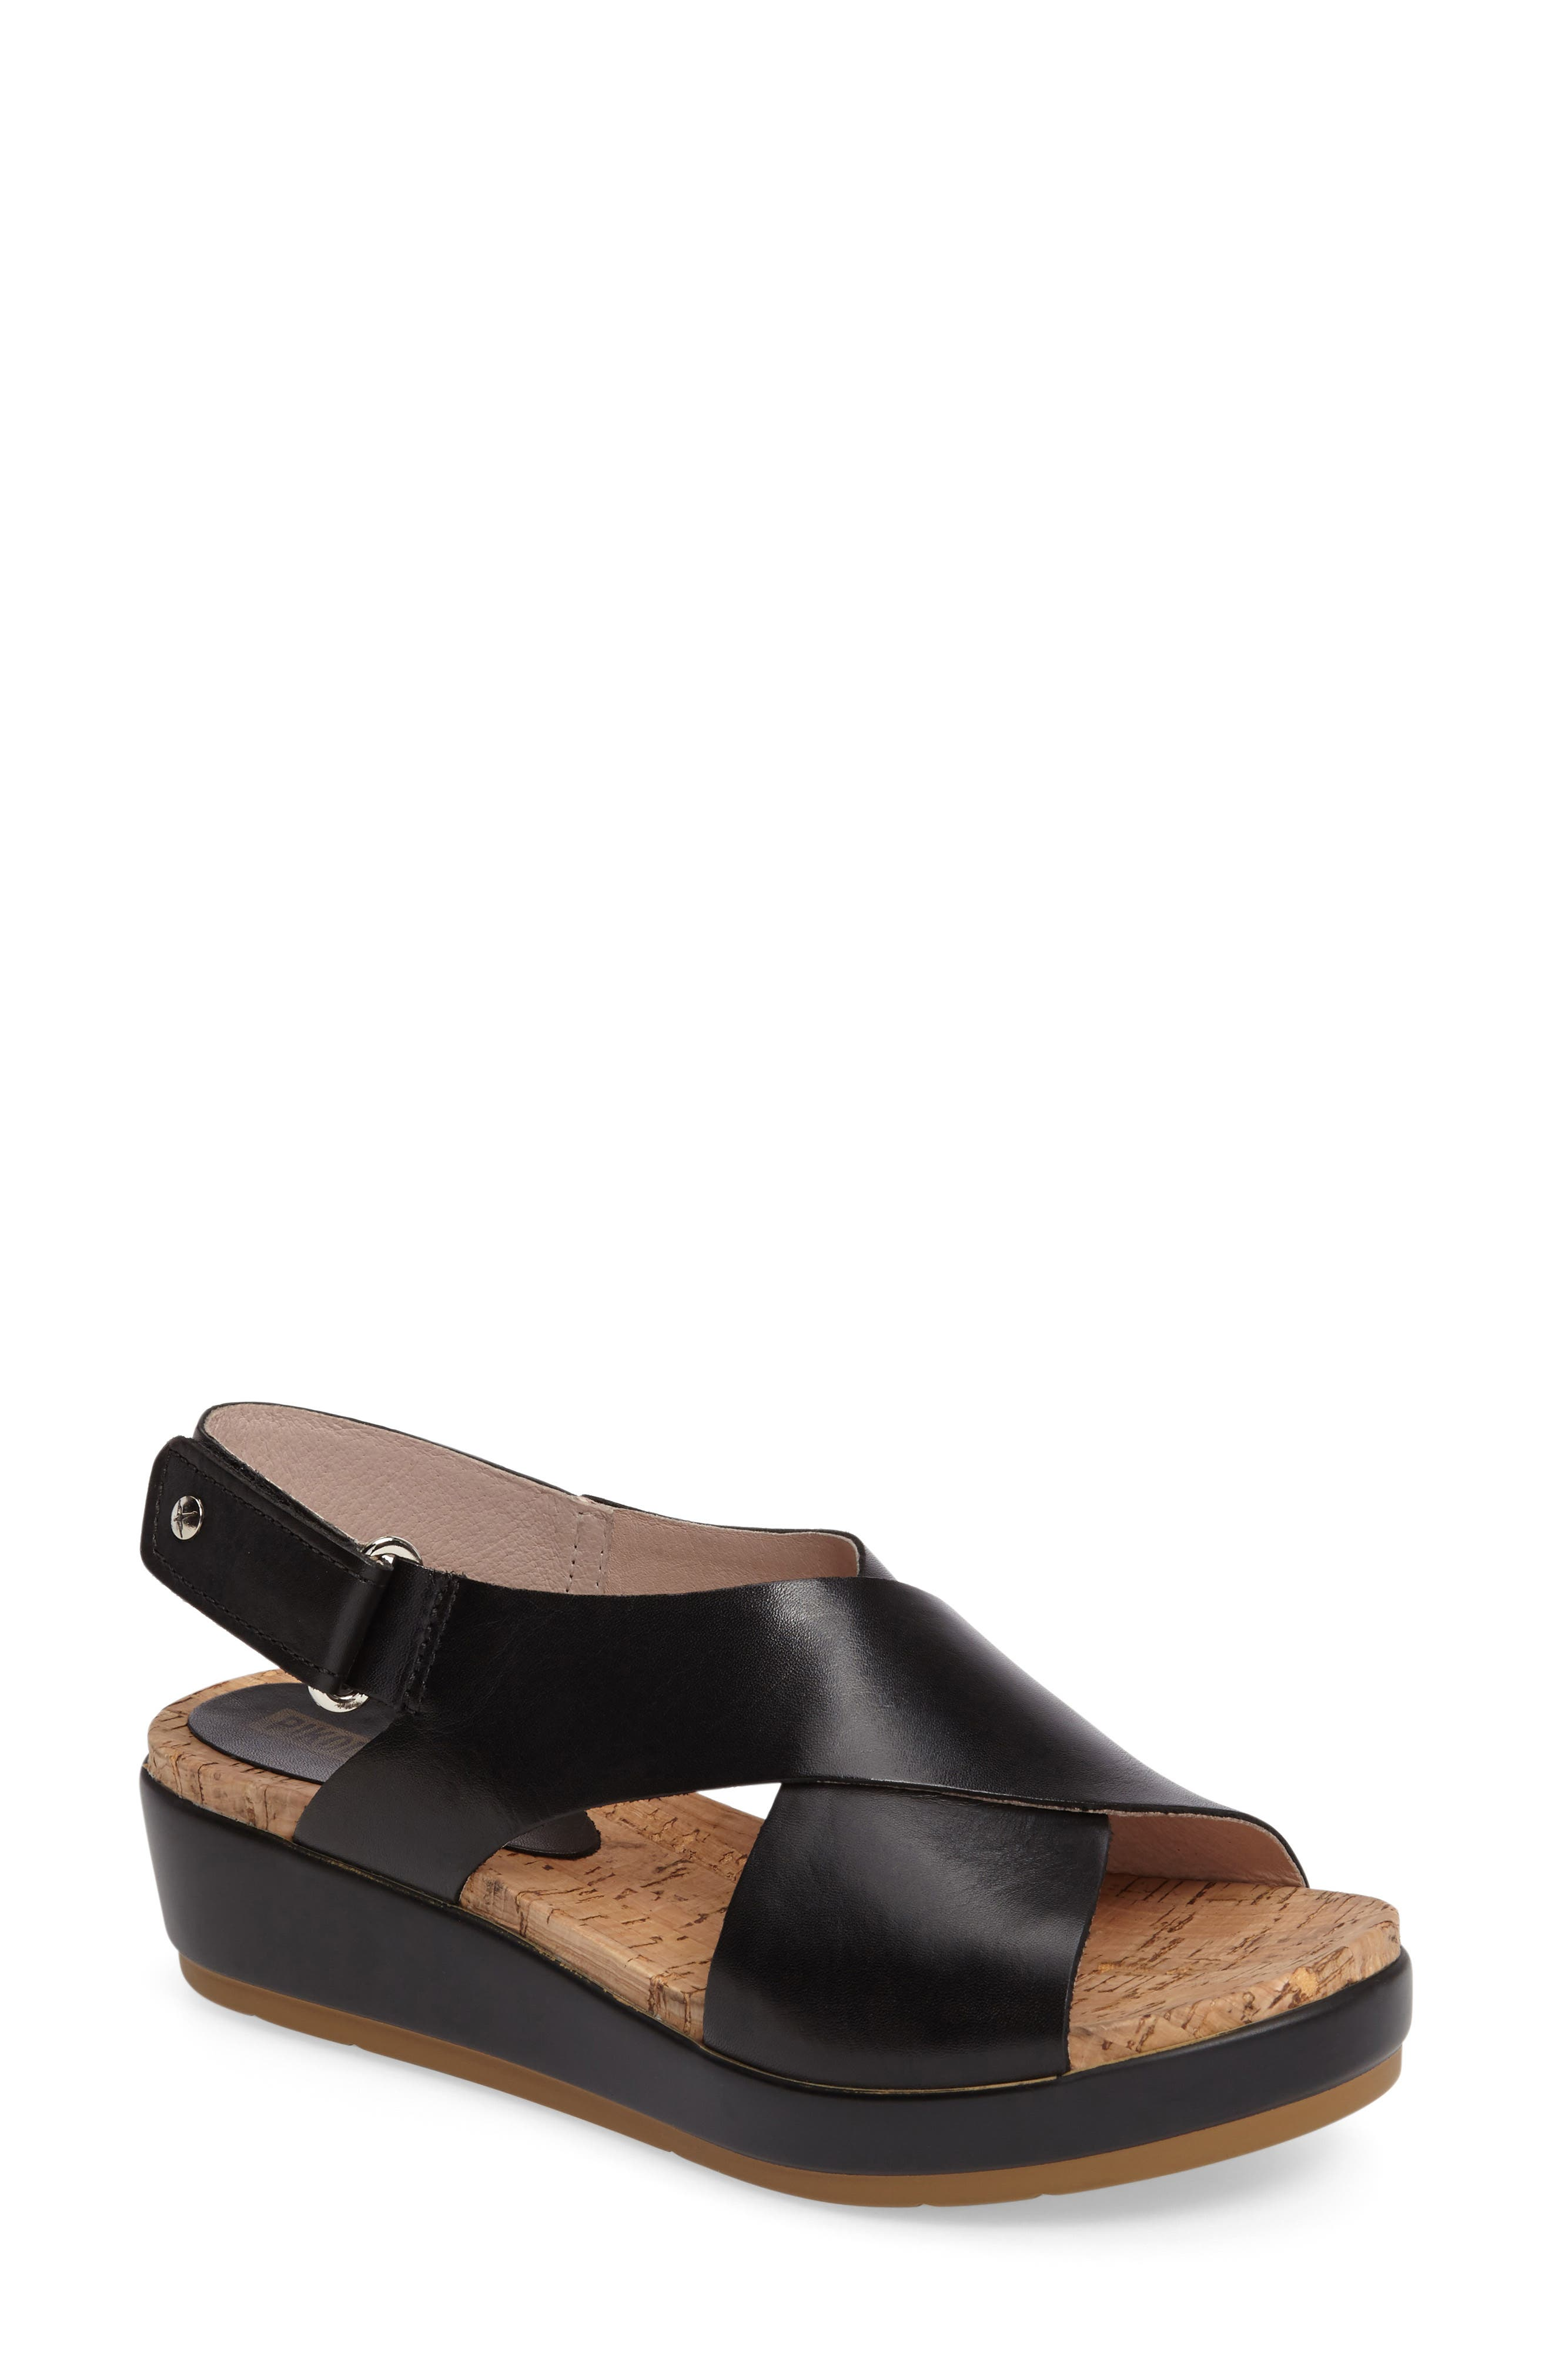 'Mykonos' Platform Sandal, Main, color, BLACK/ BLACK LEATHER